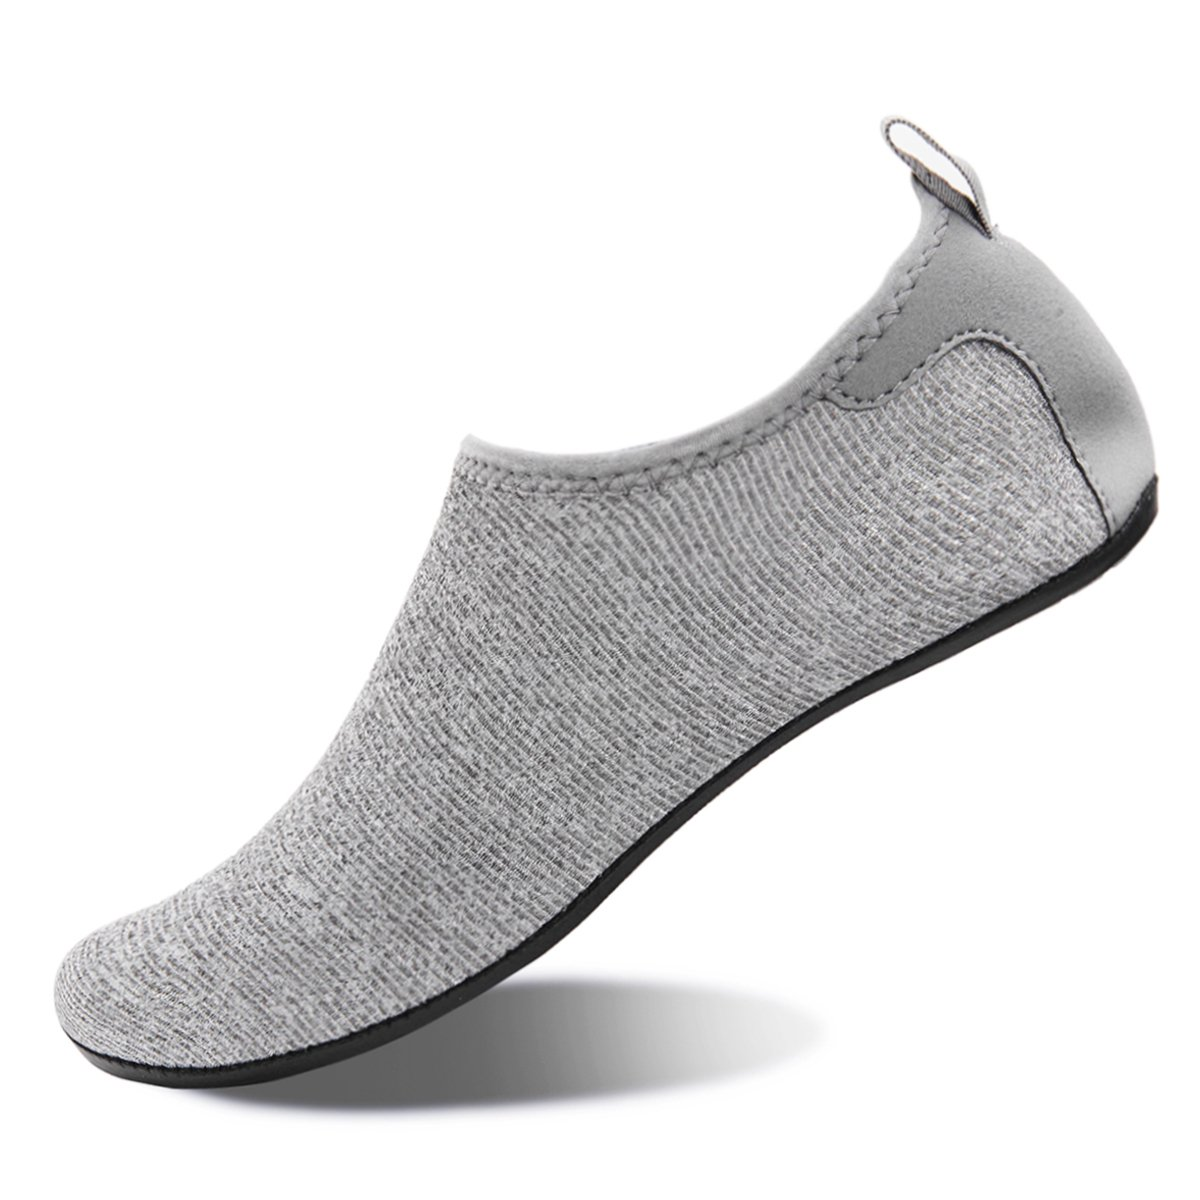 Water Shoes for Womens and Mens Summer Barefoot Shoes Quick Dry Aqua Socks for Beach Swim Yoga Exercise B07CZVD62G XL (Women:10.5-11.5/Men:9-9.5) Silver Gray